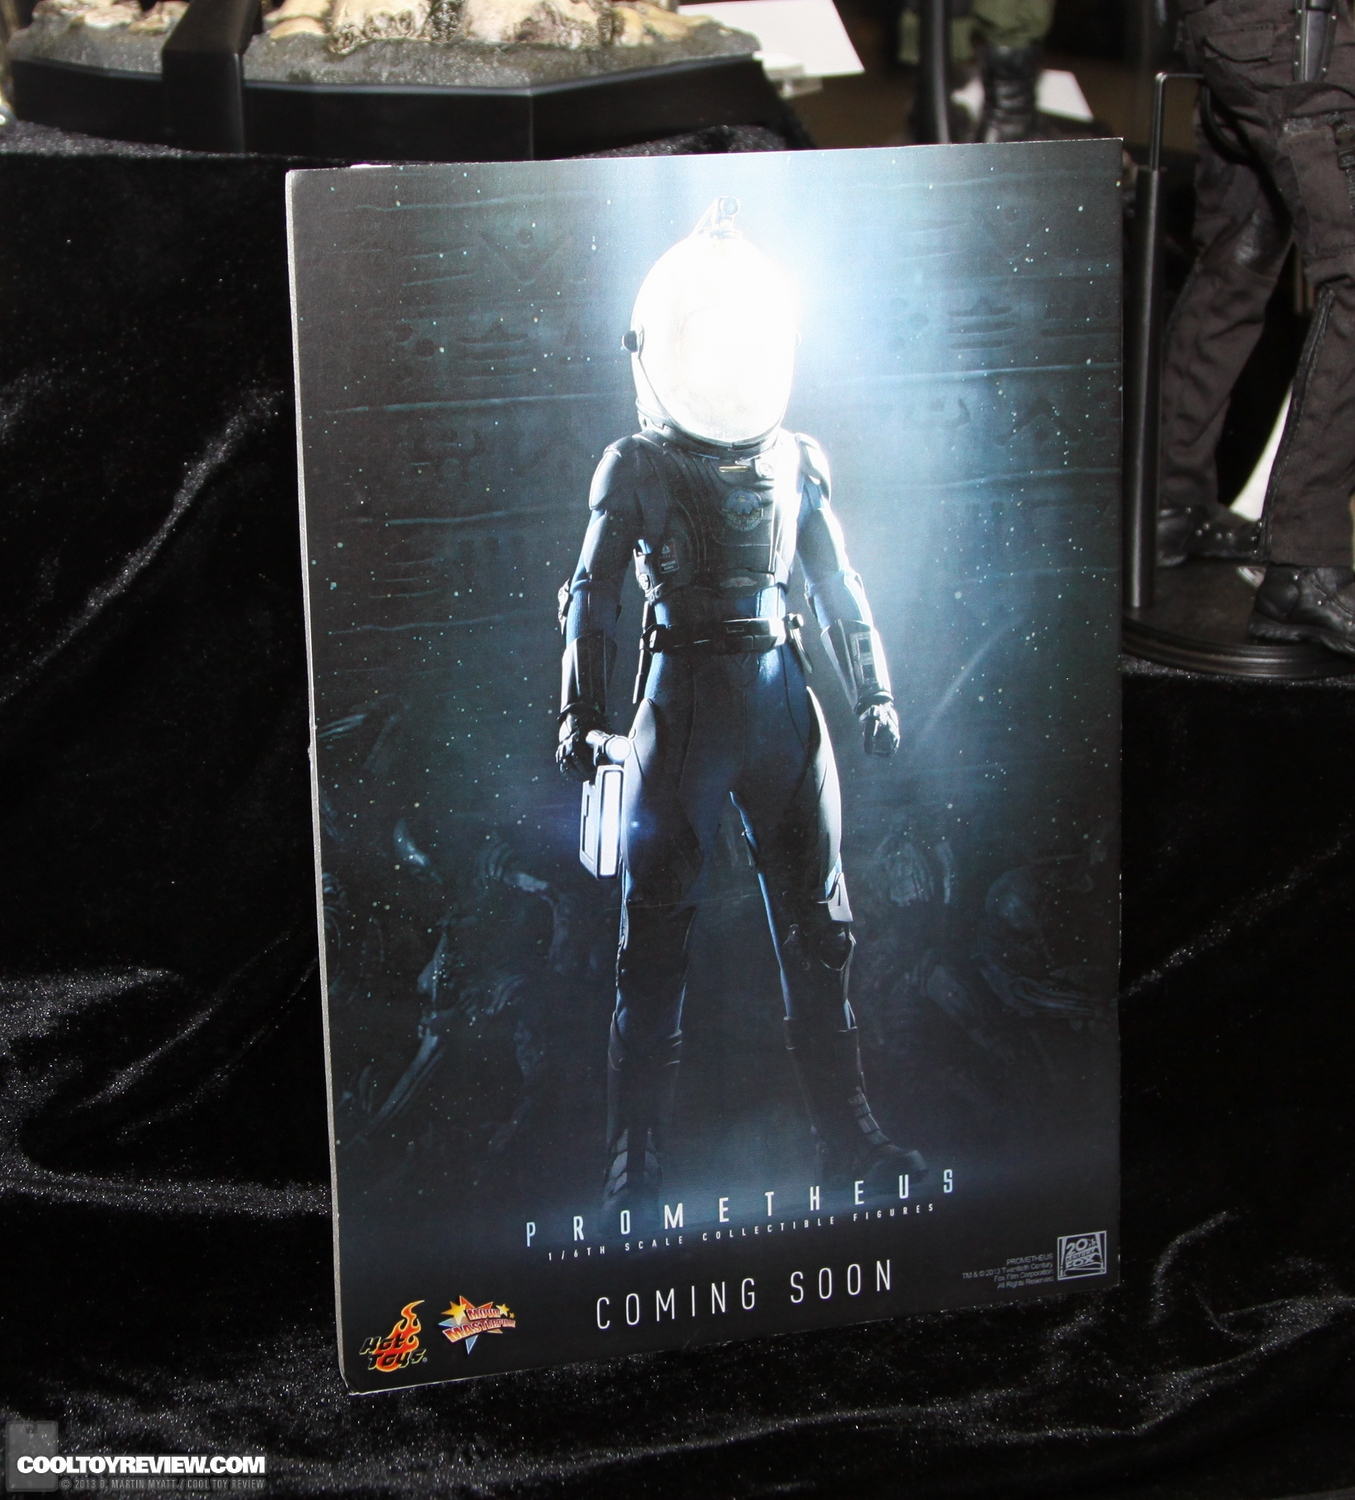 http://www.cooltoyreview.com/2013_SDCC/SDCC_2013_Hot_Toys_Saturday/SDCC_2013_Hot_Toys_Saturday-032.jpg